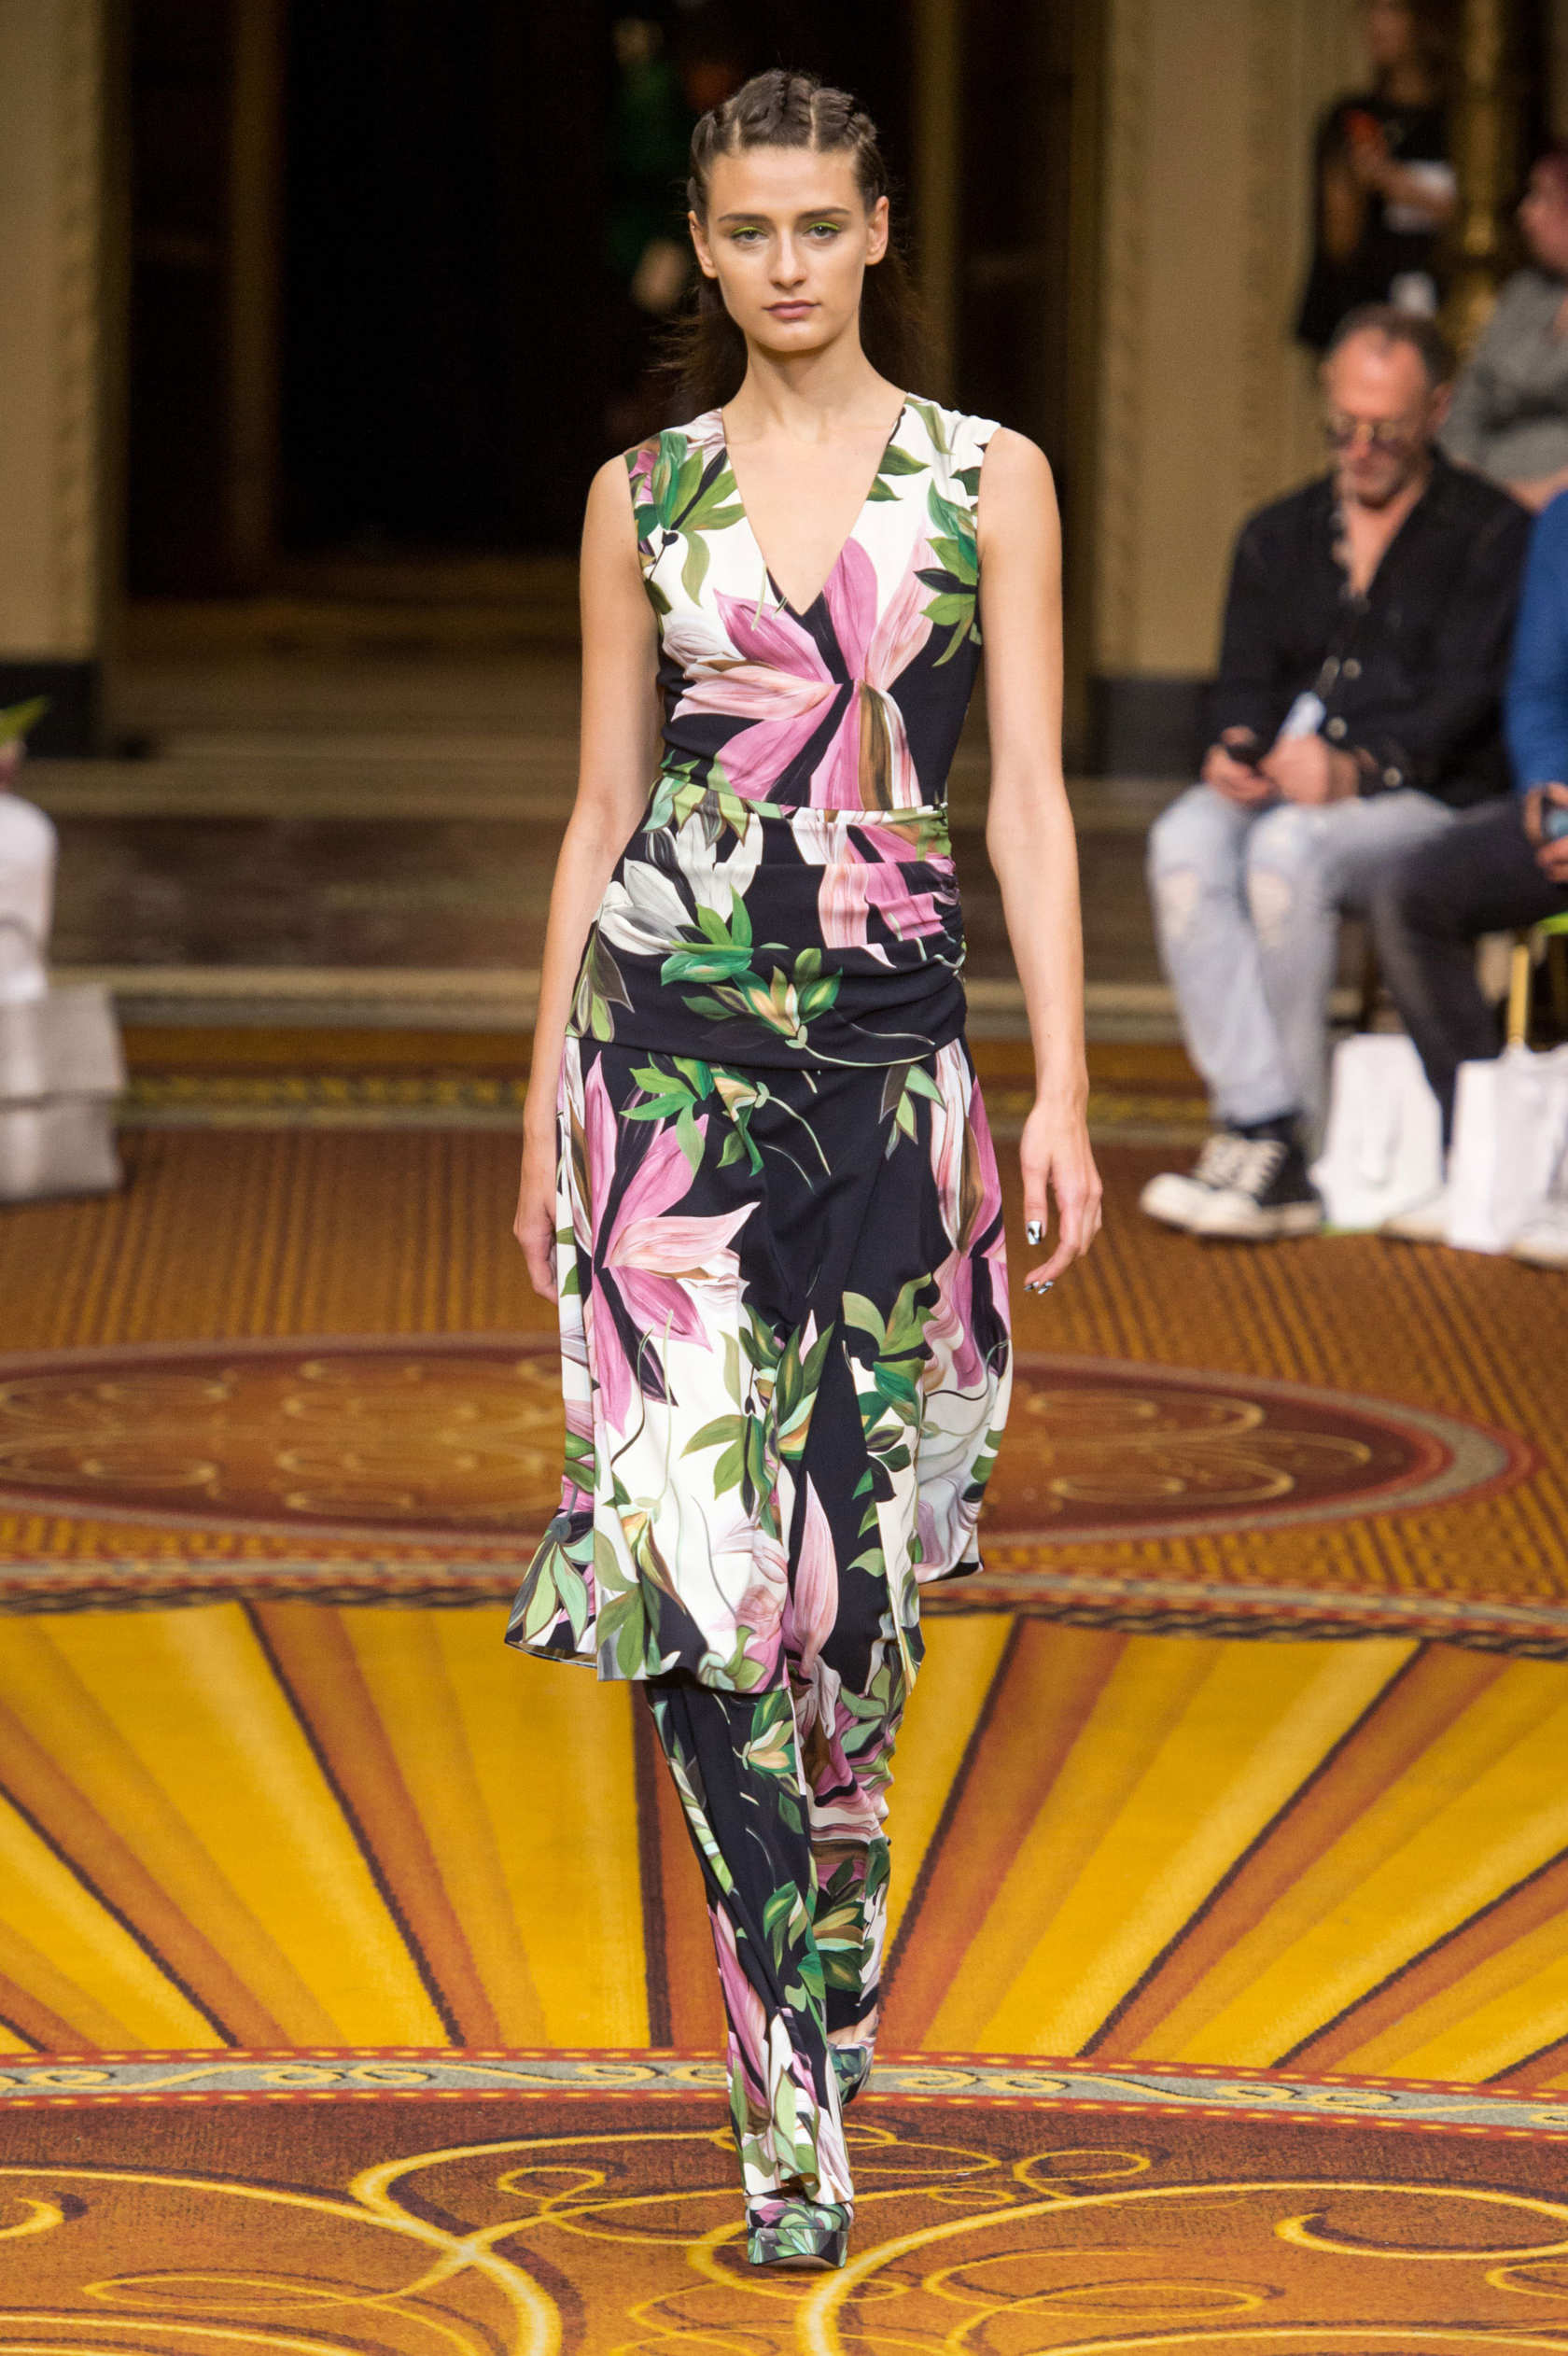 Christian Siriano Spring 2019 RTW Collection at NYFW recommendations